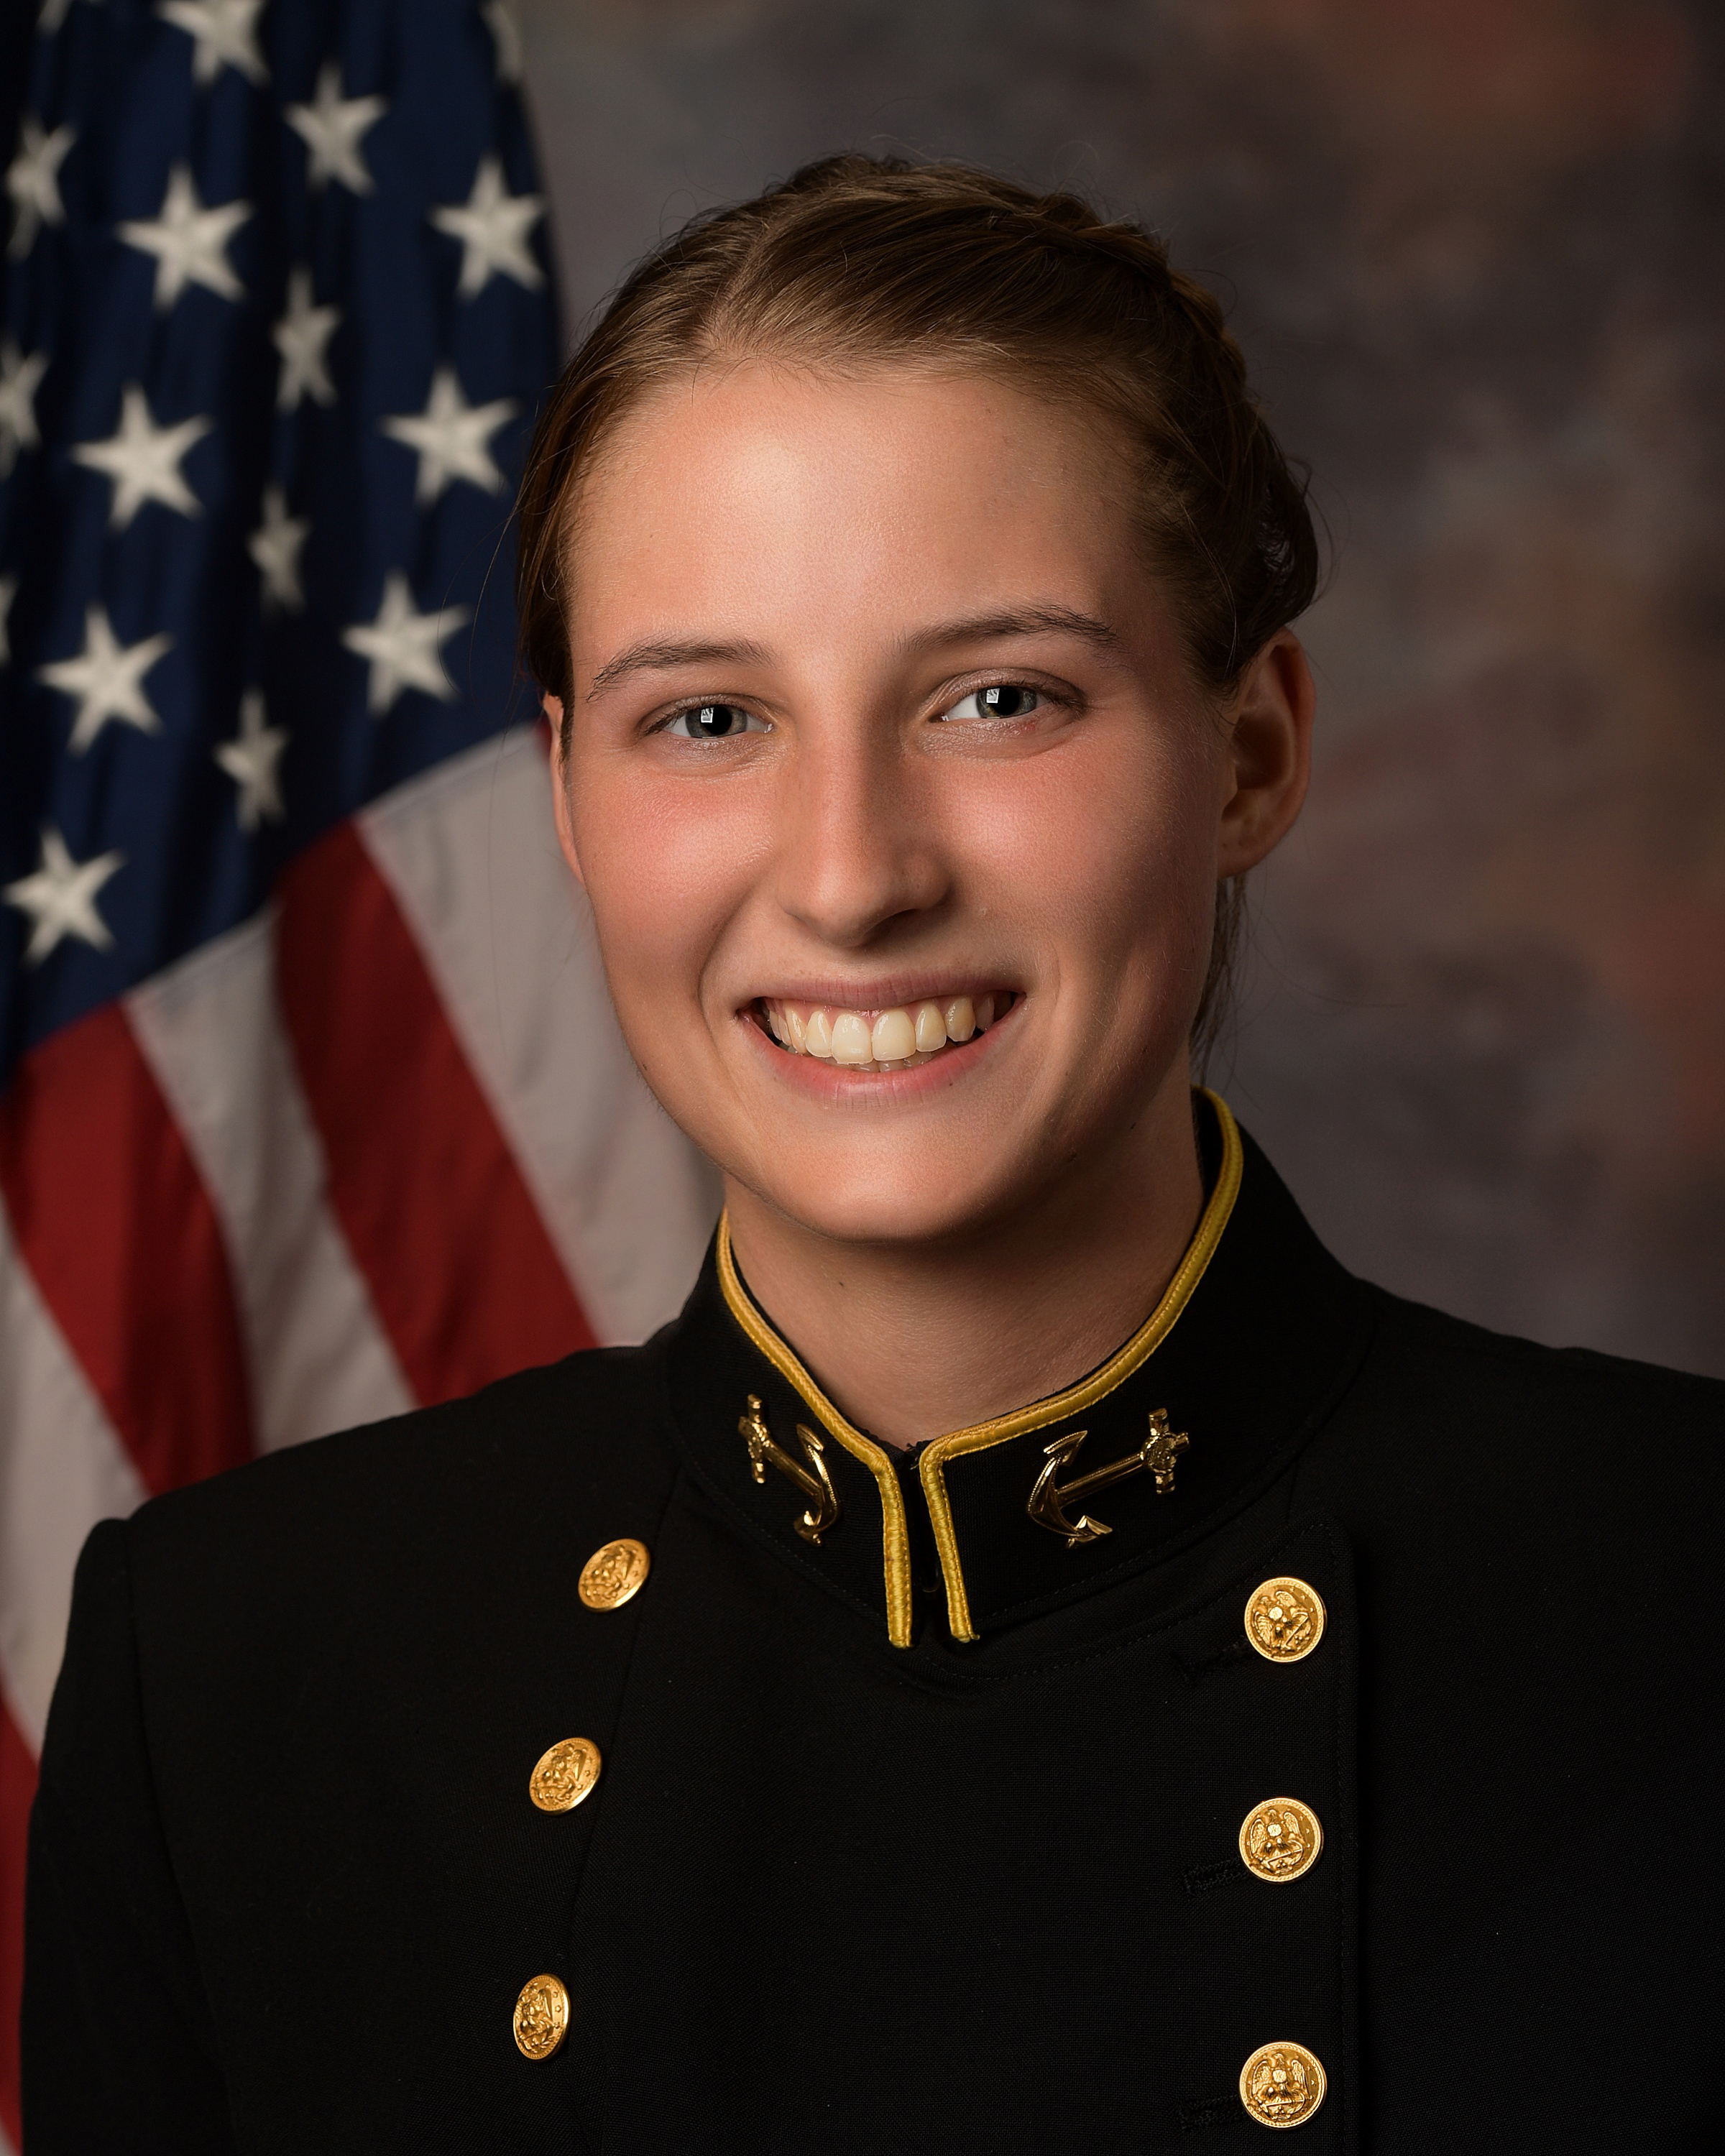 Latter-day Saint Avery Stowell plays volleyball for the United States Naval Academy.